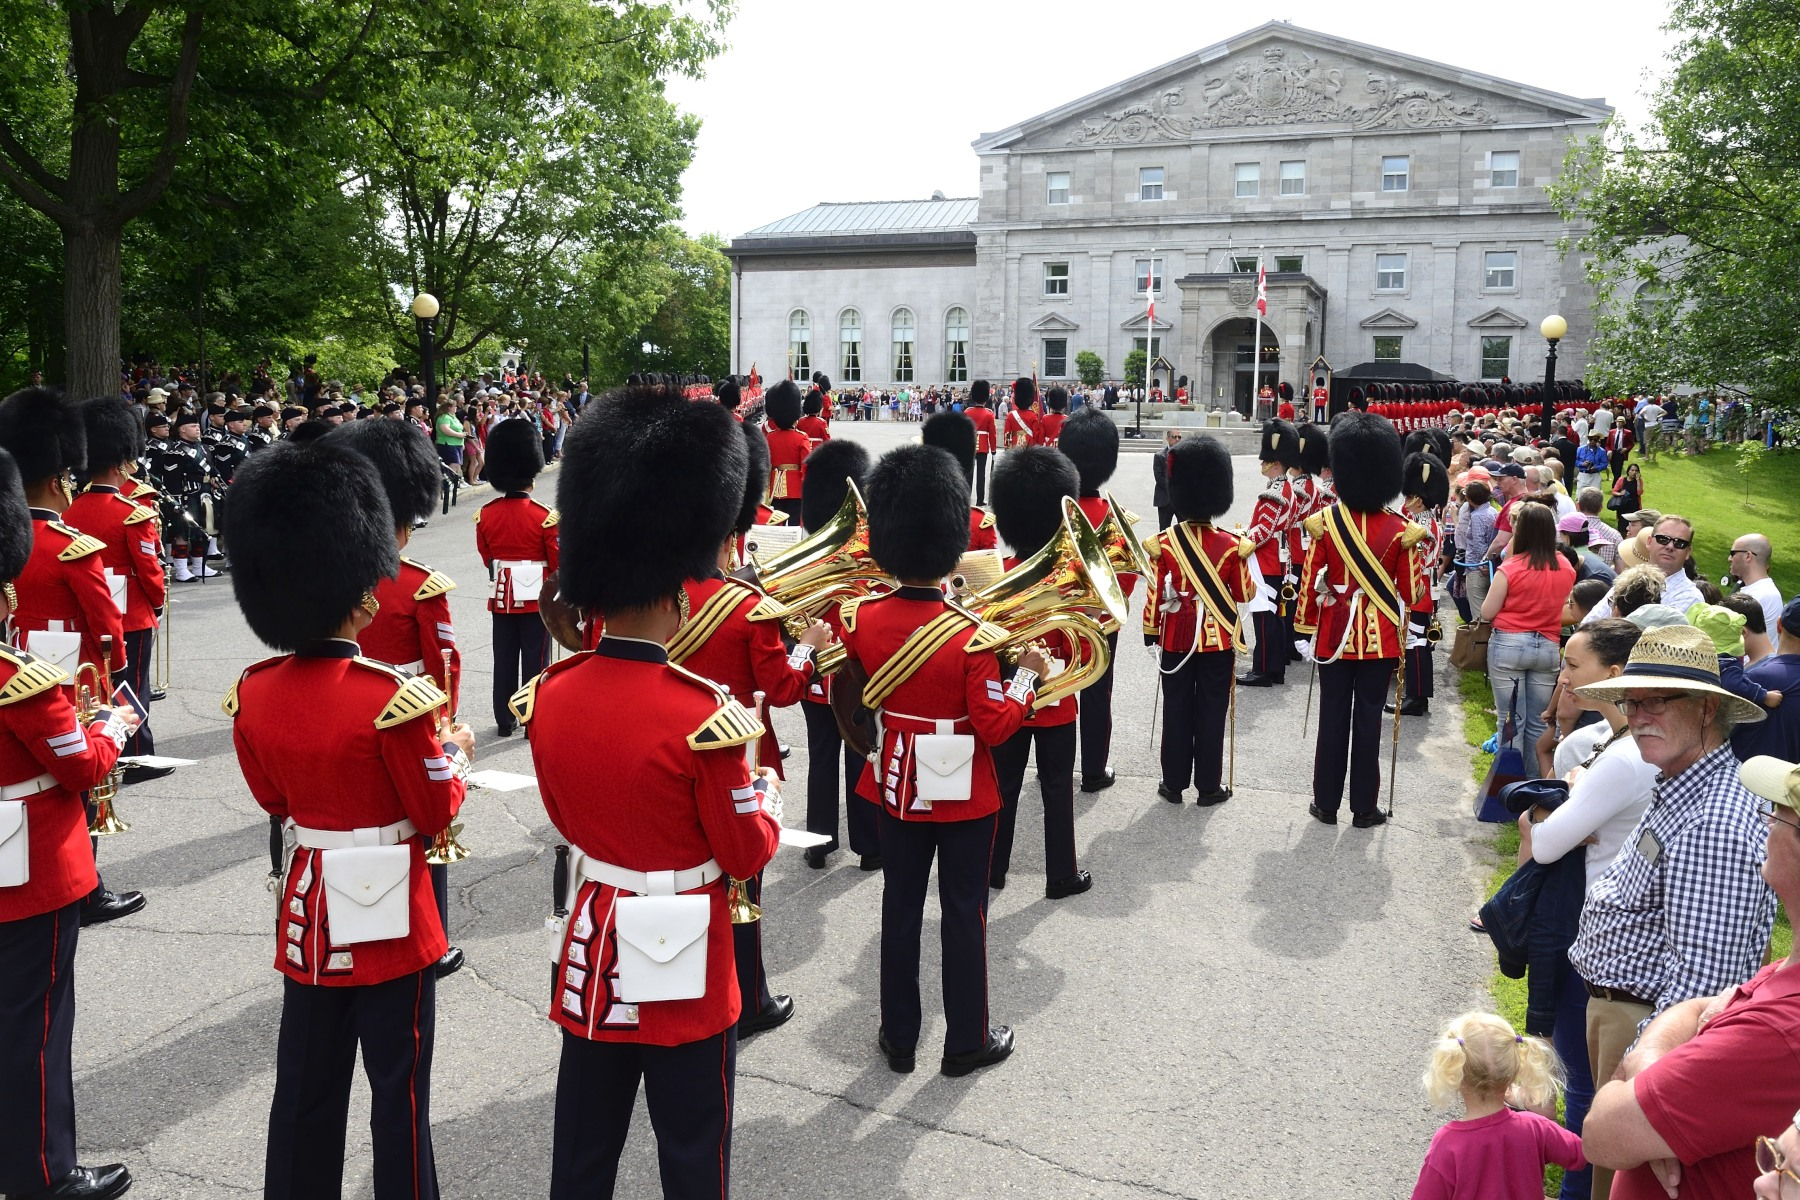 Members of the public were invited to witness the pageantry, precision and colour of the Governor General's annual Inspection of the Ceremonial Guard, which included members of regiments from across the country.